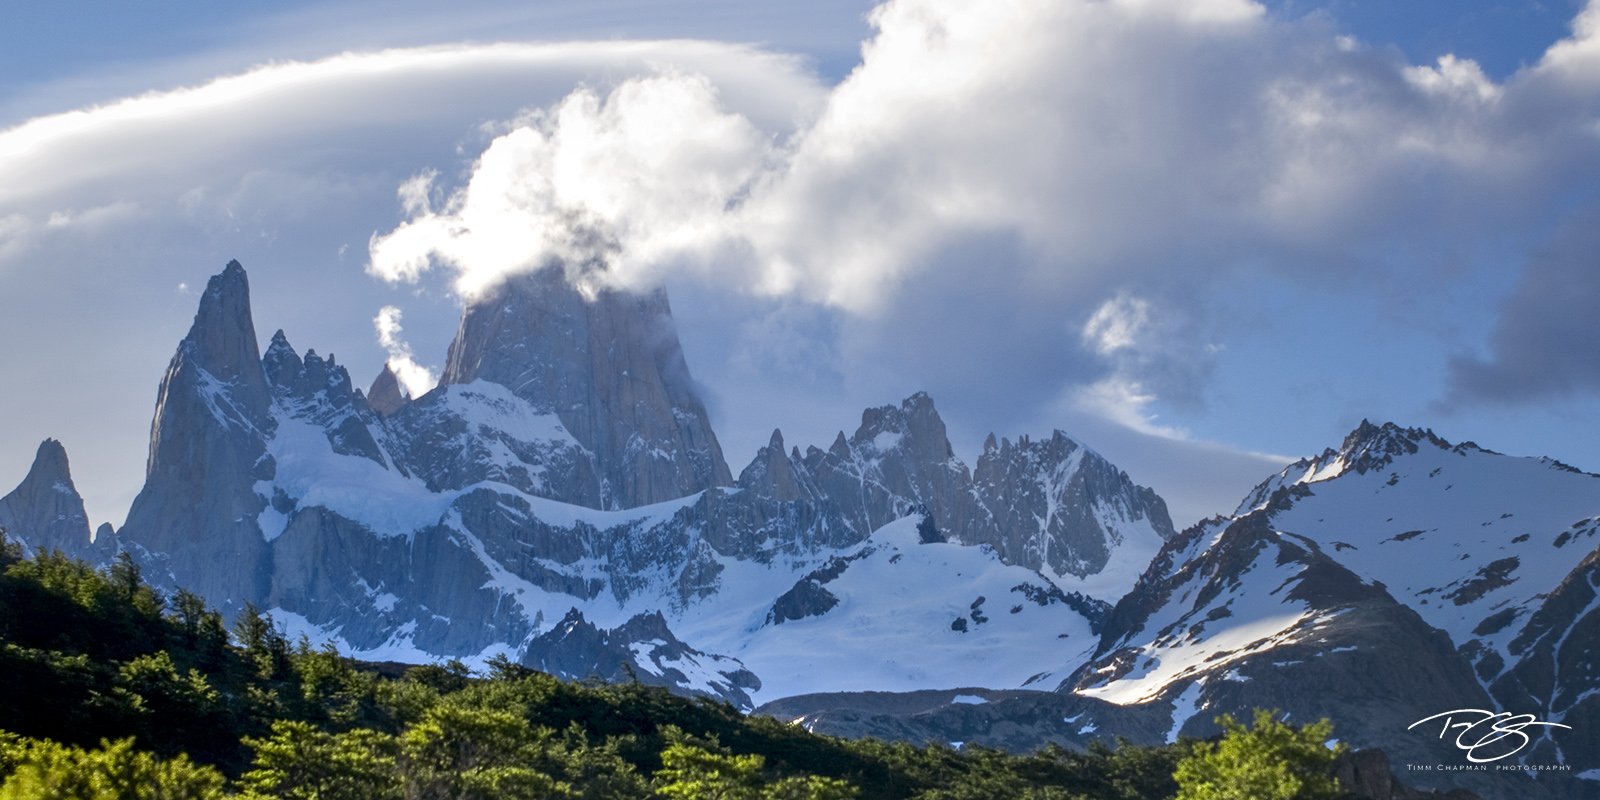 jagged peaks, mountain peaks, torres, mt fitzroy, fitzroy, mount, mountain, patagonia, argentina, el chalten, weather maker, weathermaker, storms, rugged peaks, rugged, landscape, photo